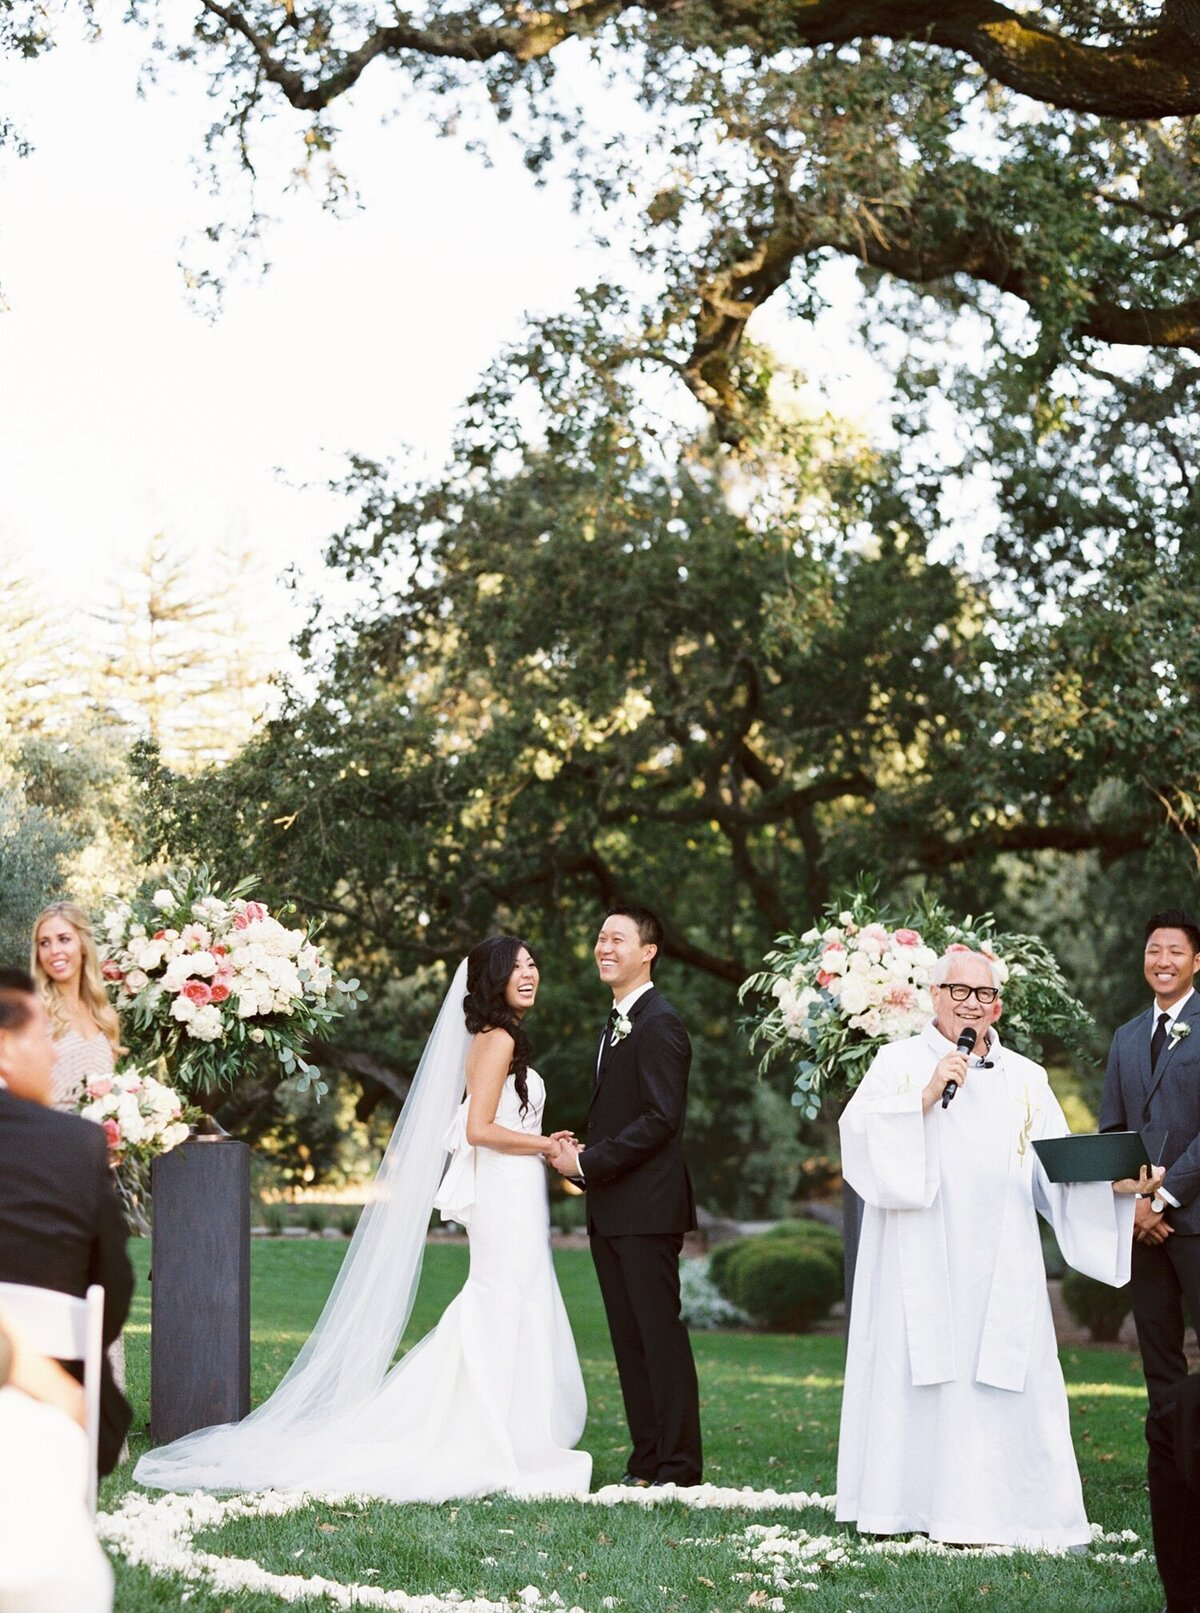 Domaine_Chandon_Winery_Yountville_Wedding-011